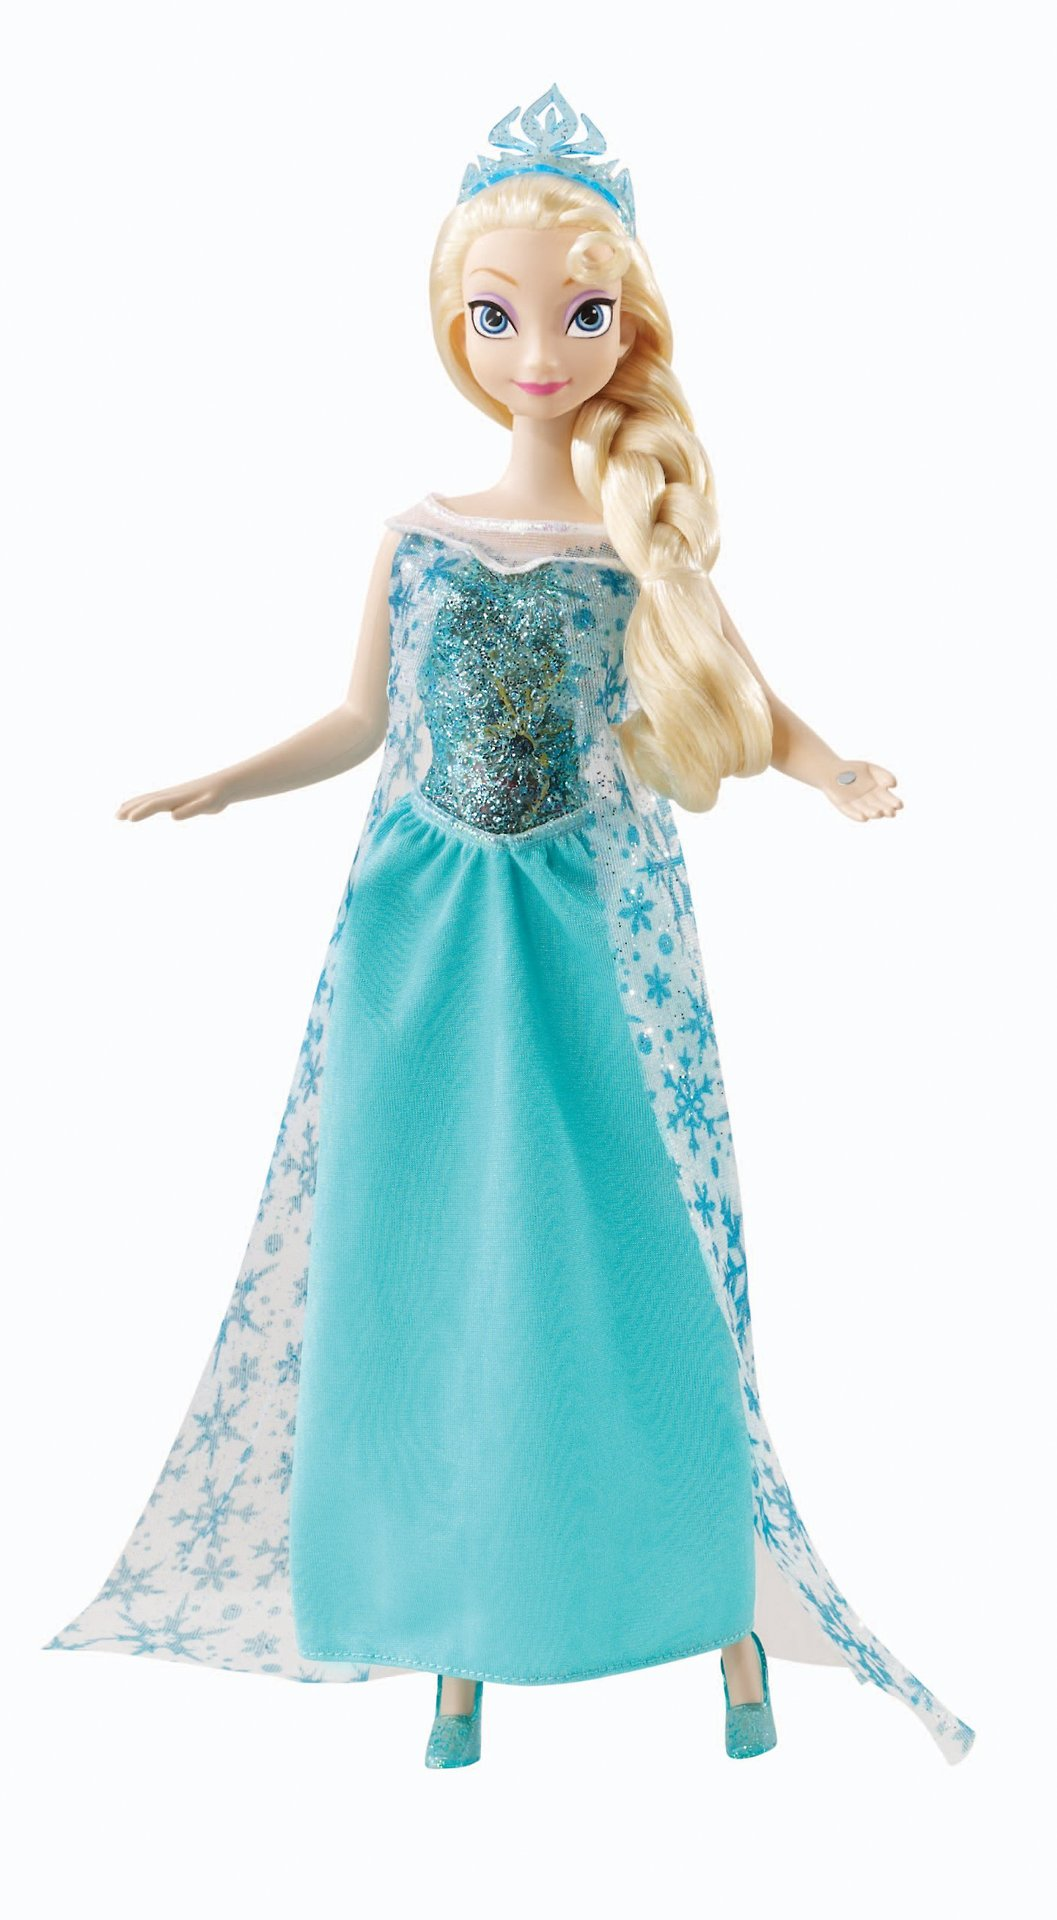 Elsa Doll  Frozen Photo 35678888  Fanpop